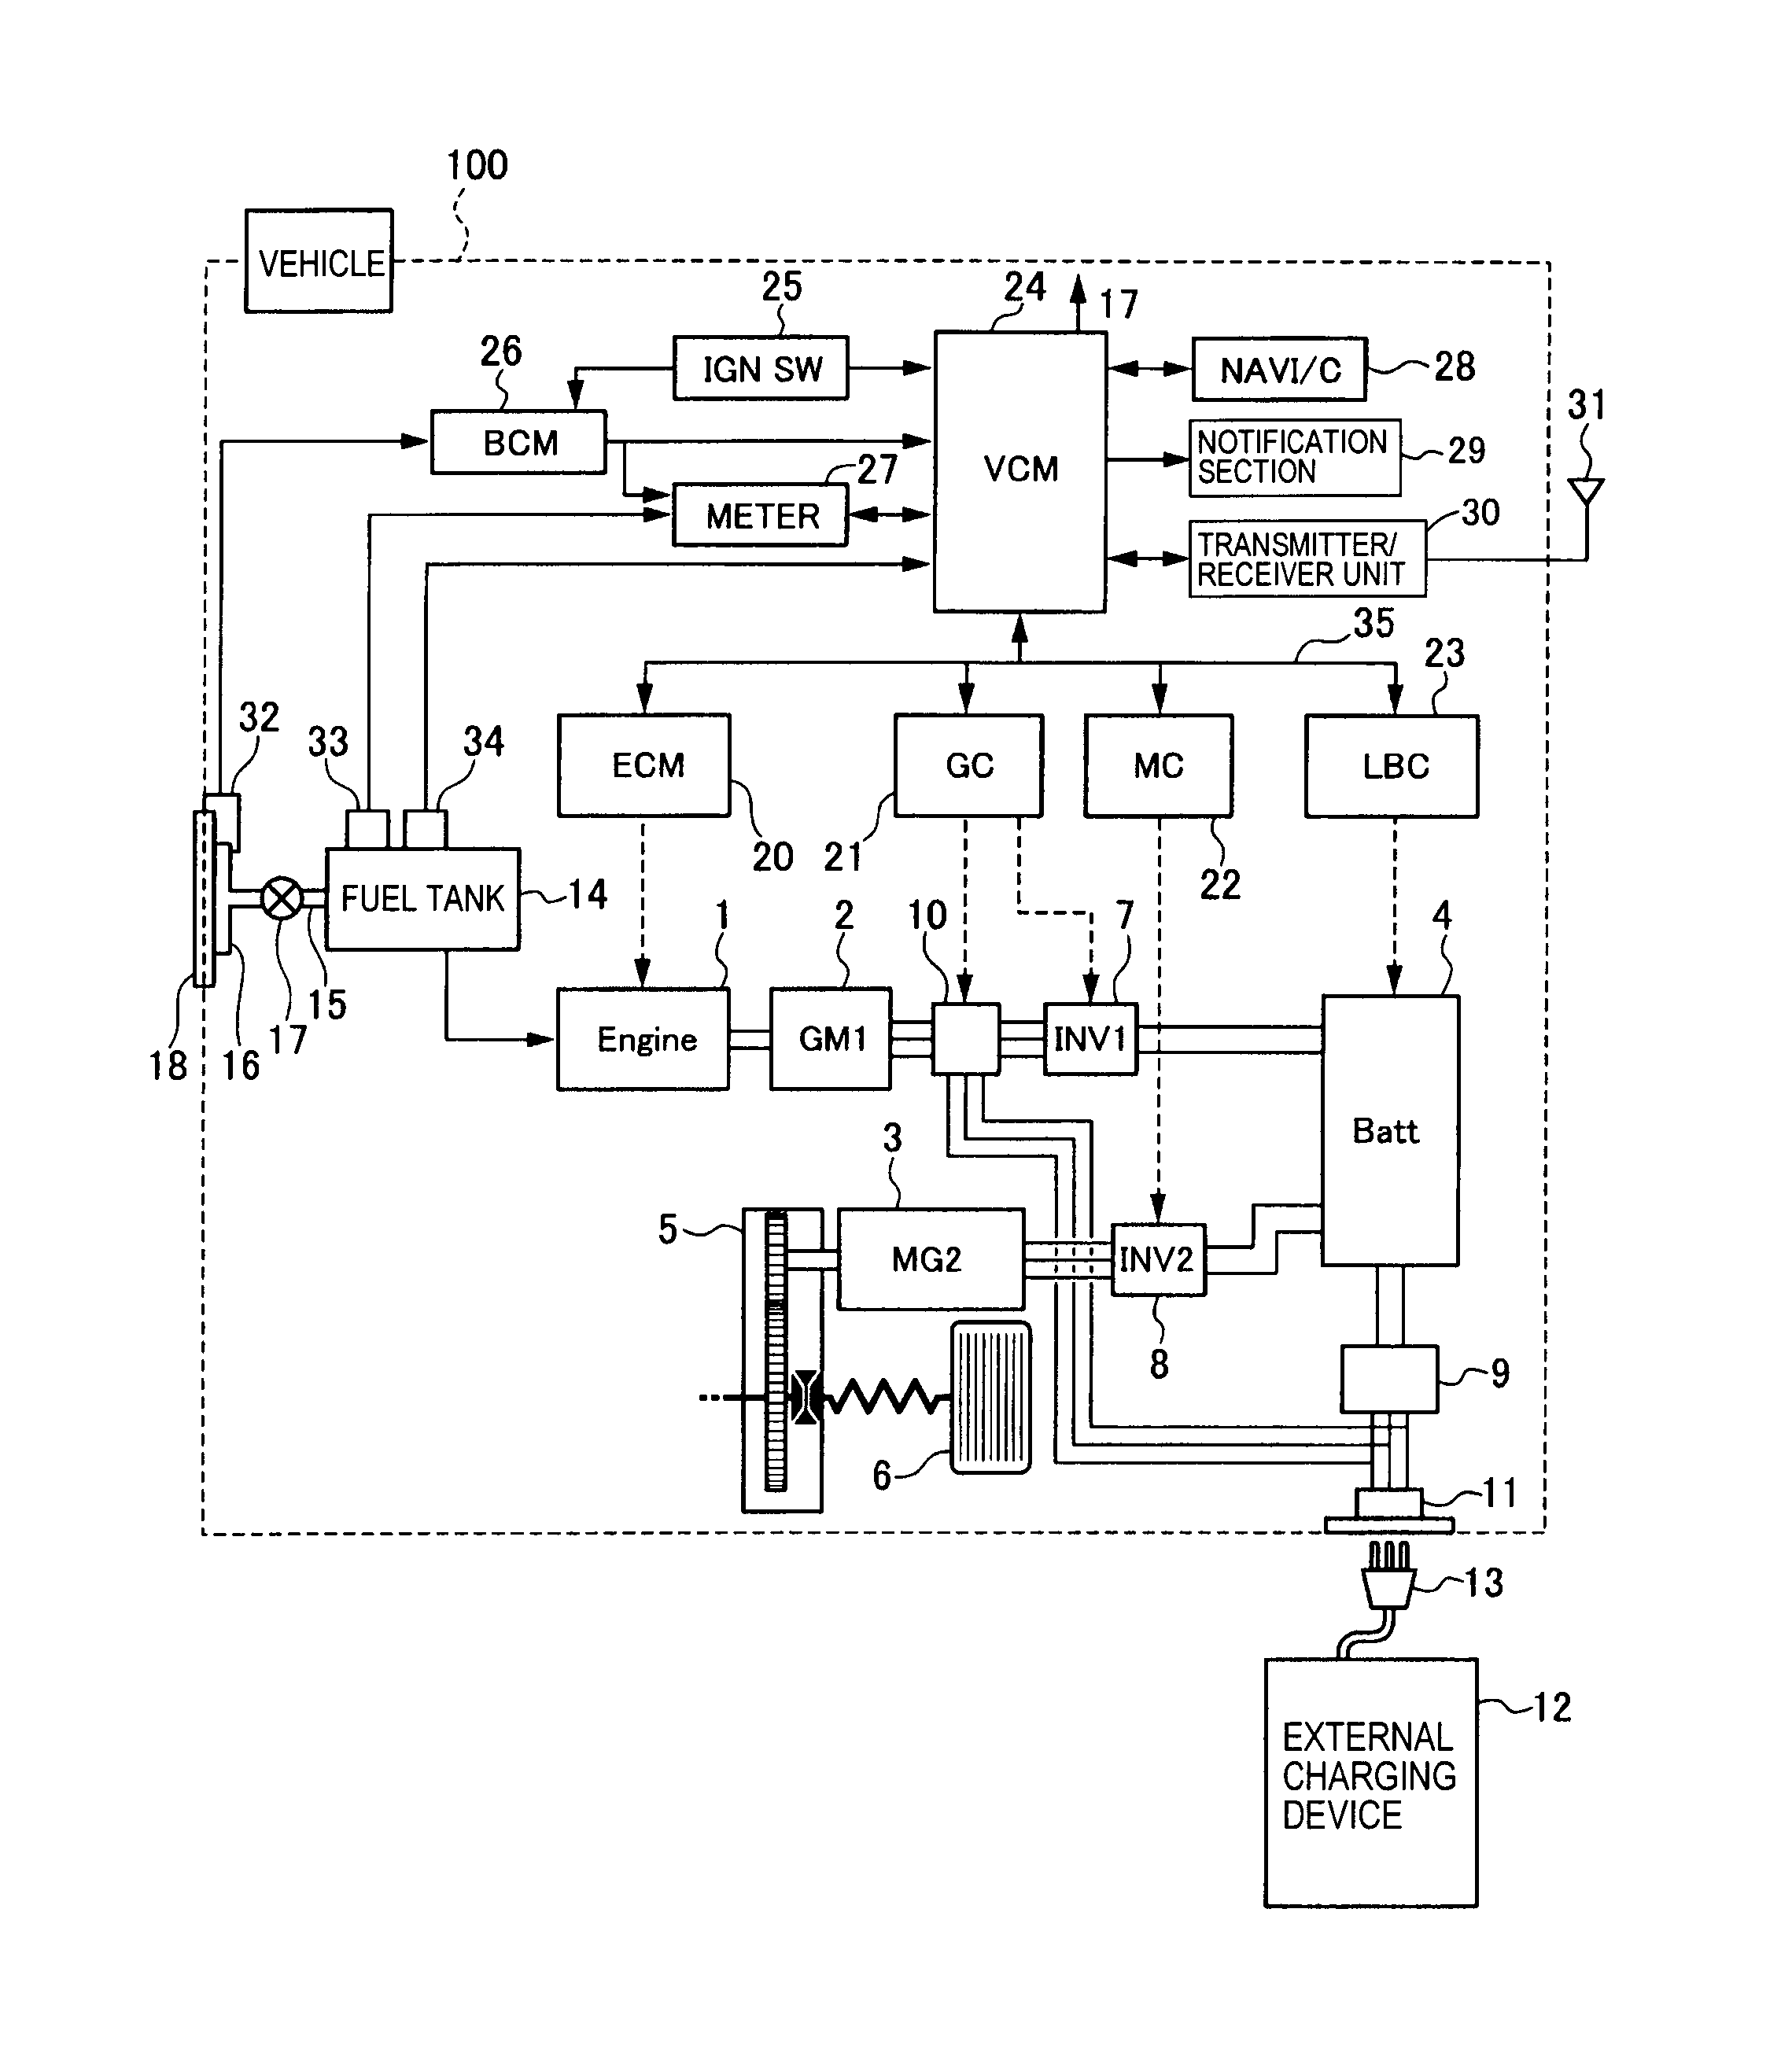 e200 electric scooter green parts diagram